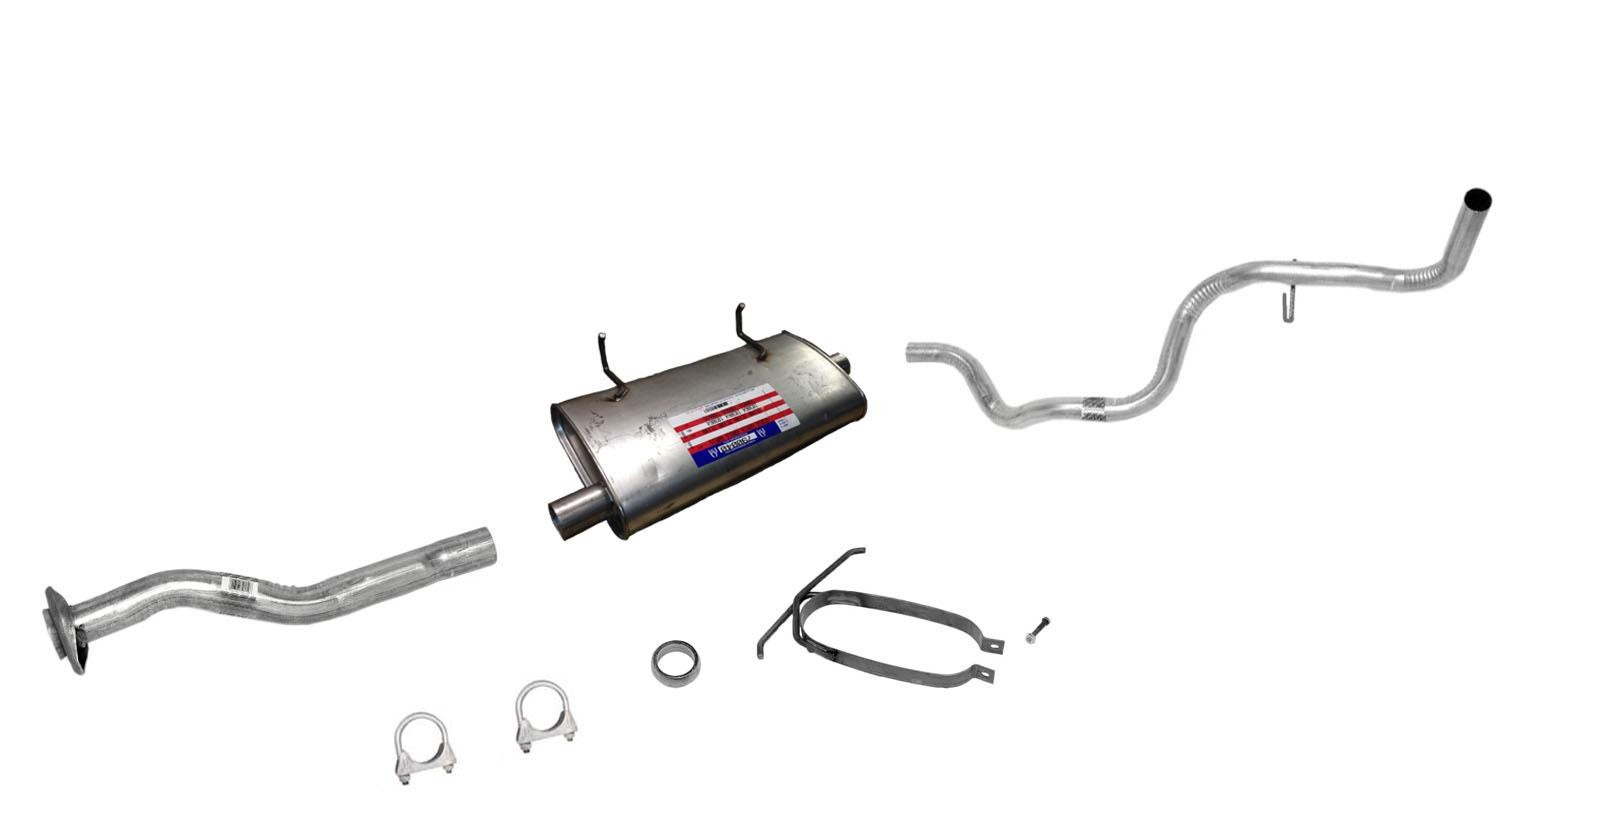 98-00 Ranger 2.5L 3.0L 4.0L 118 Wheel Base Muffler Exhaust